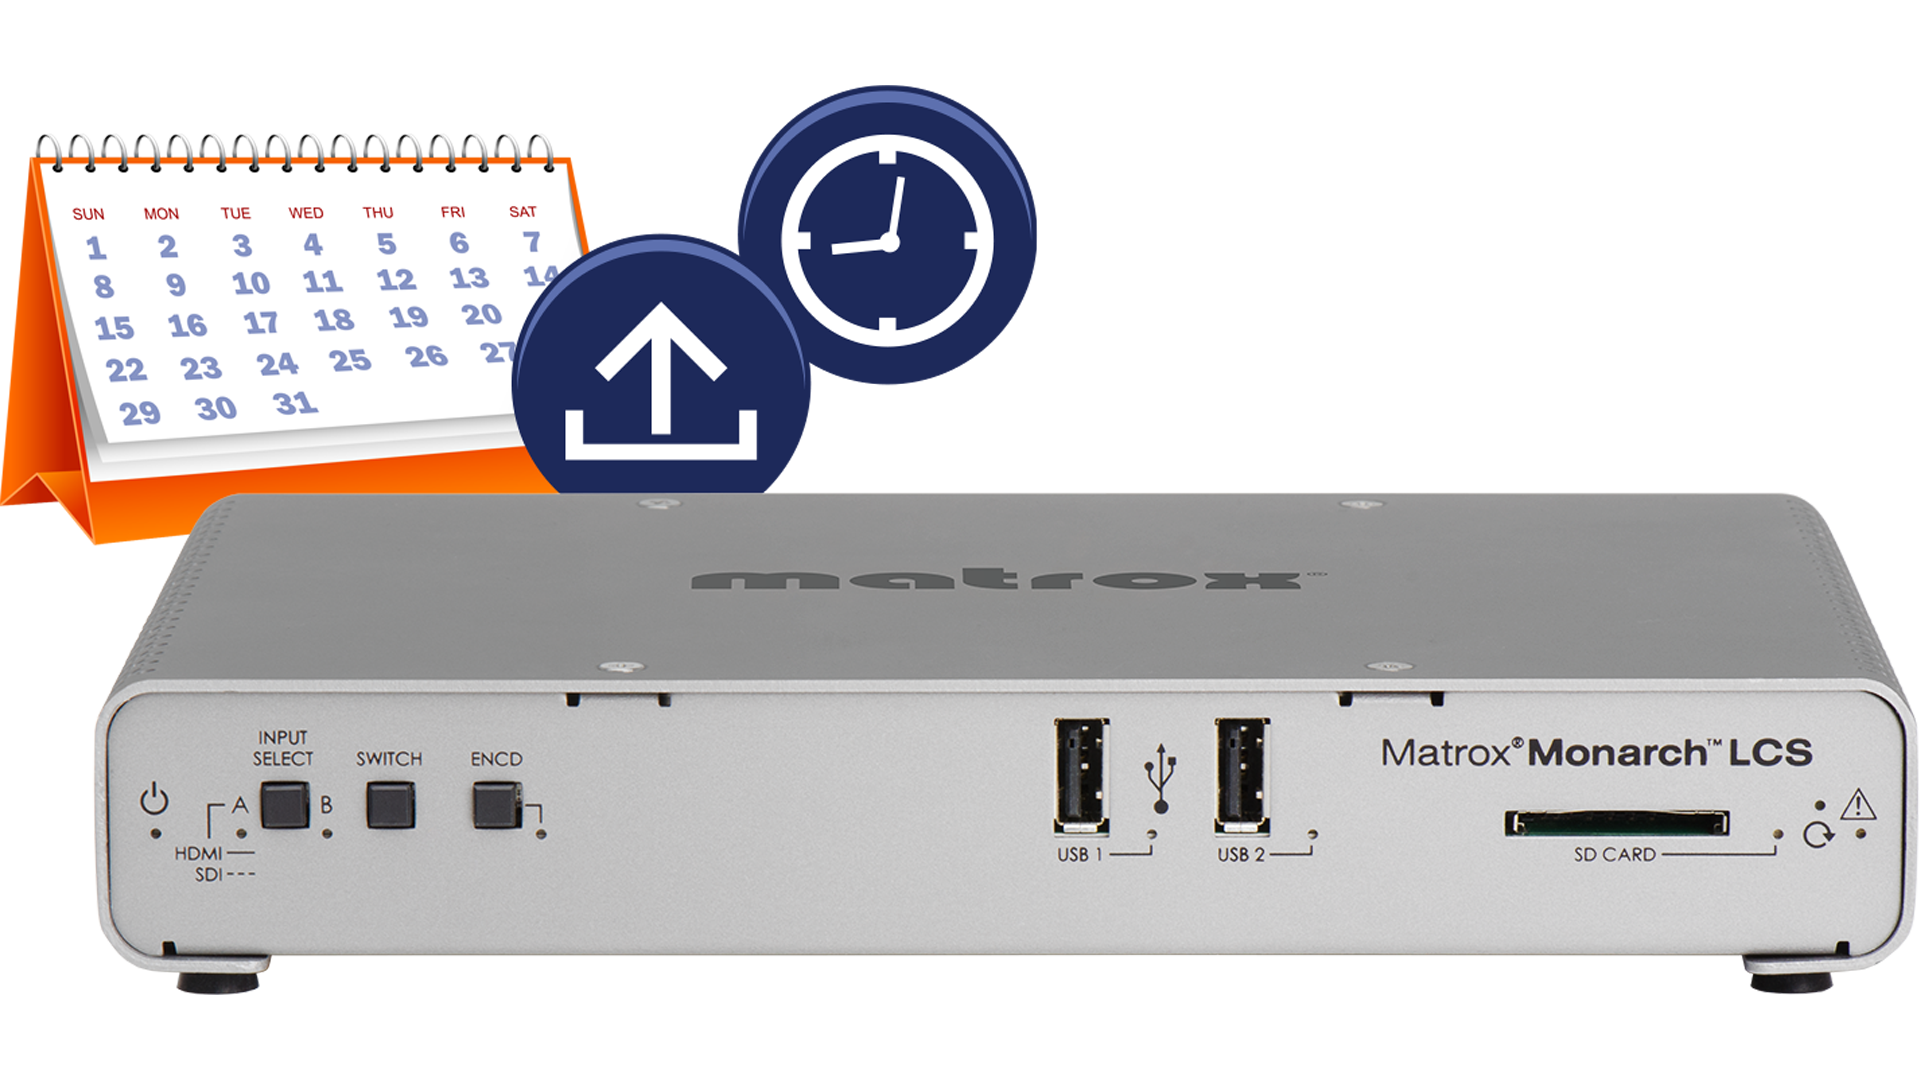 Updates to the Matrox Monarch LCS include automated device scheduling and store & forward file transfer.